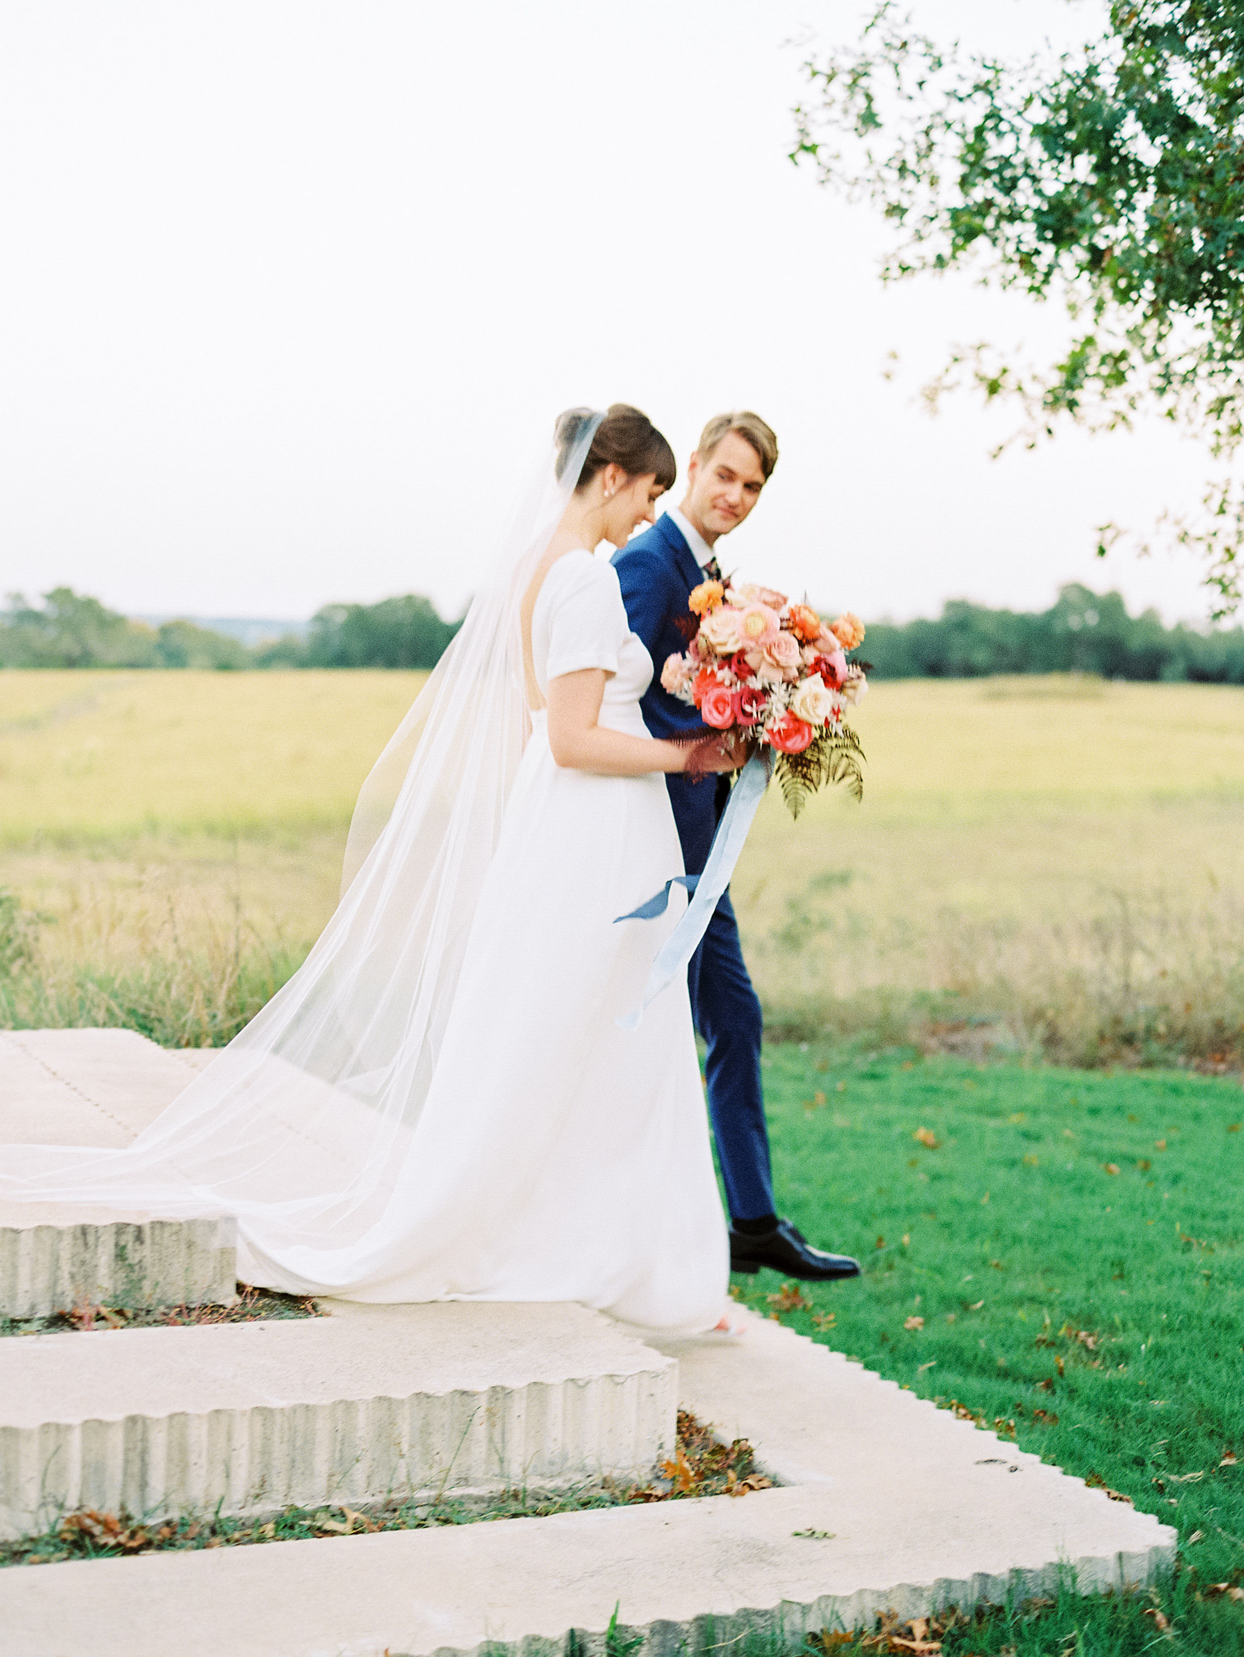 couple walking down stone steps from ceremony location into grassy field